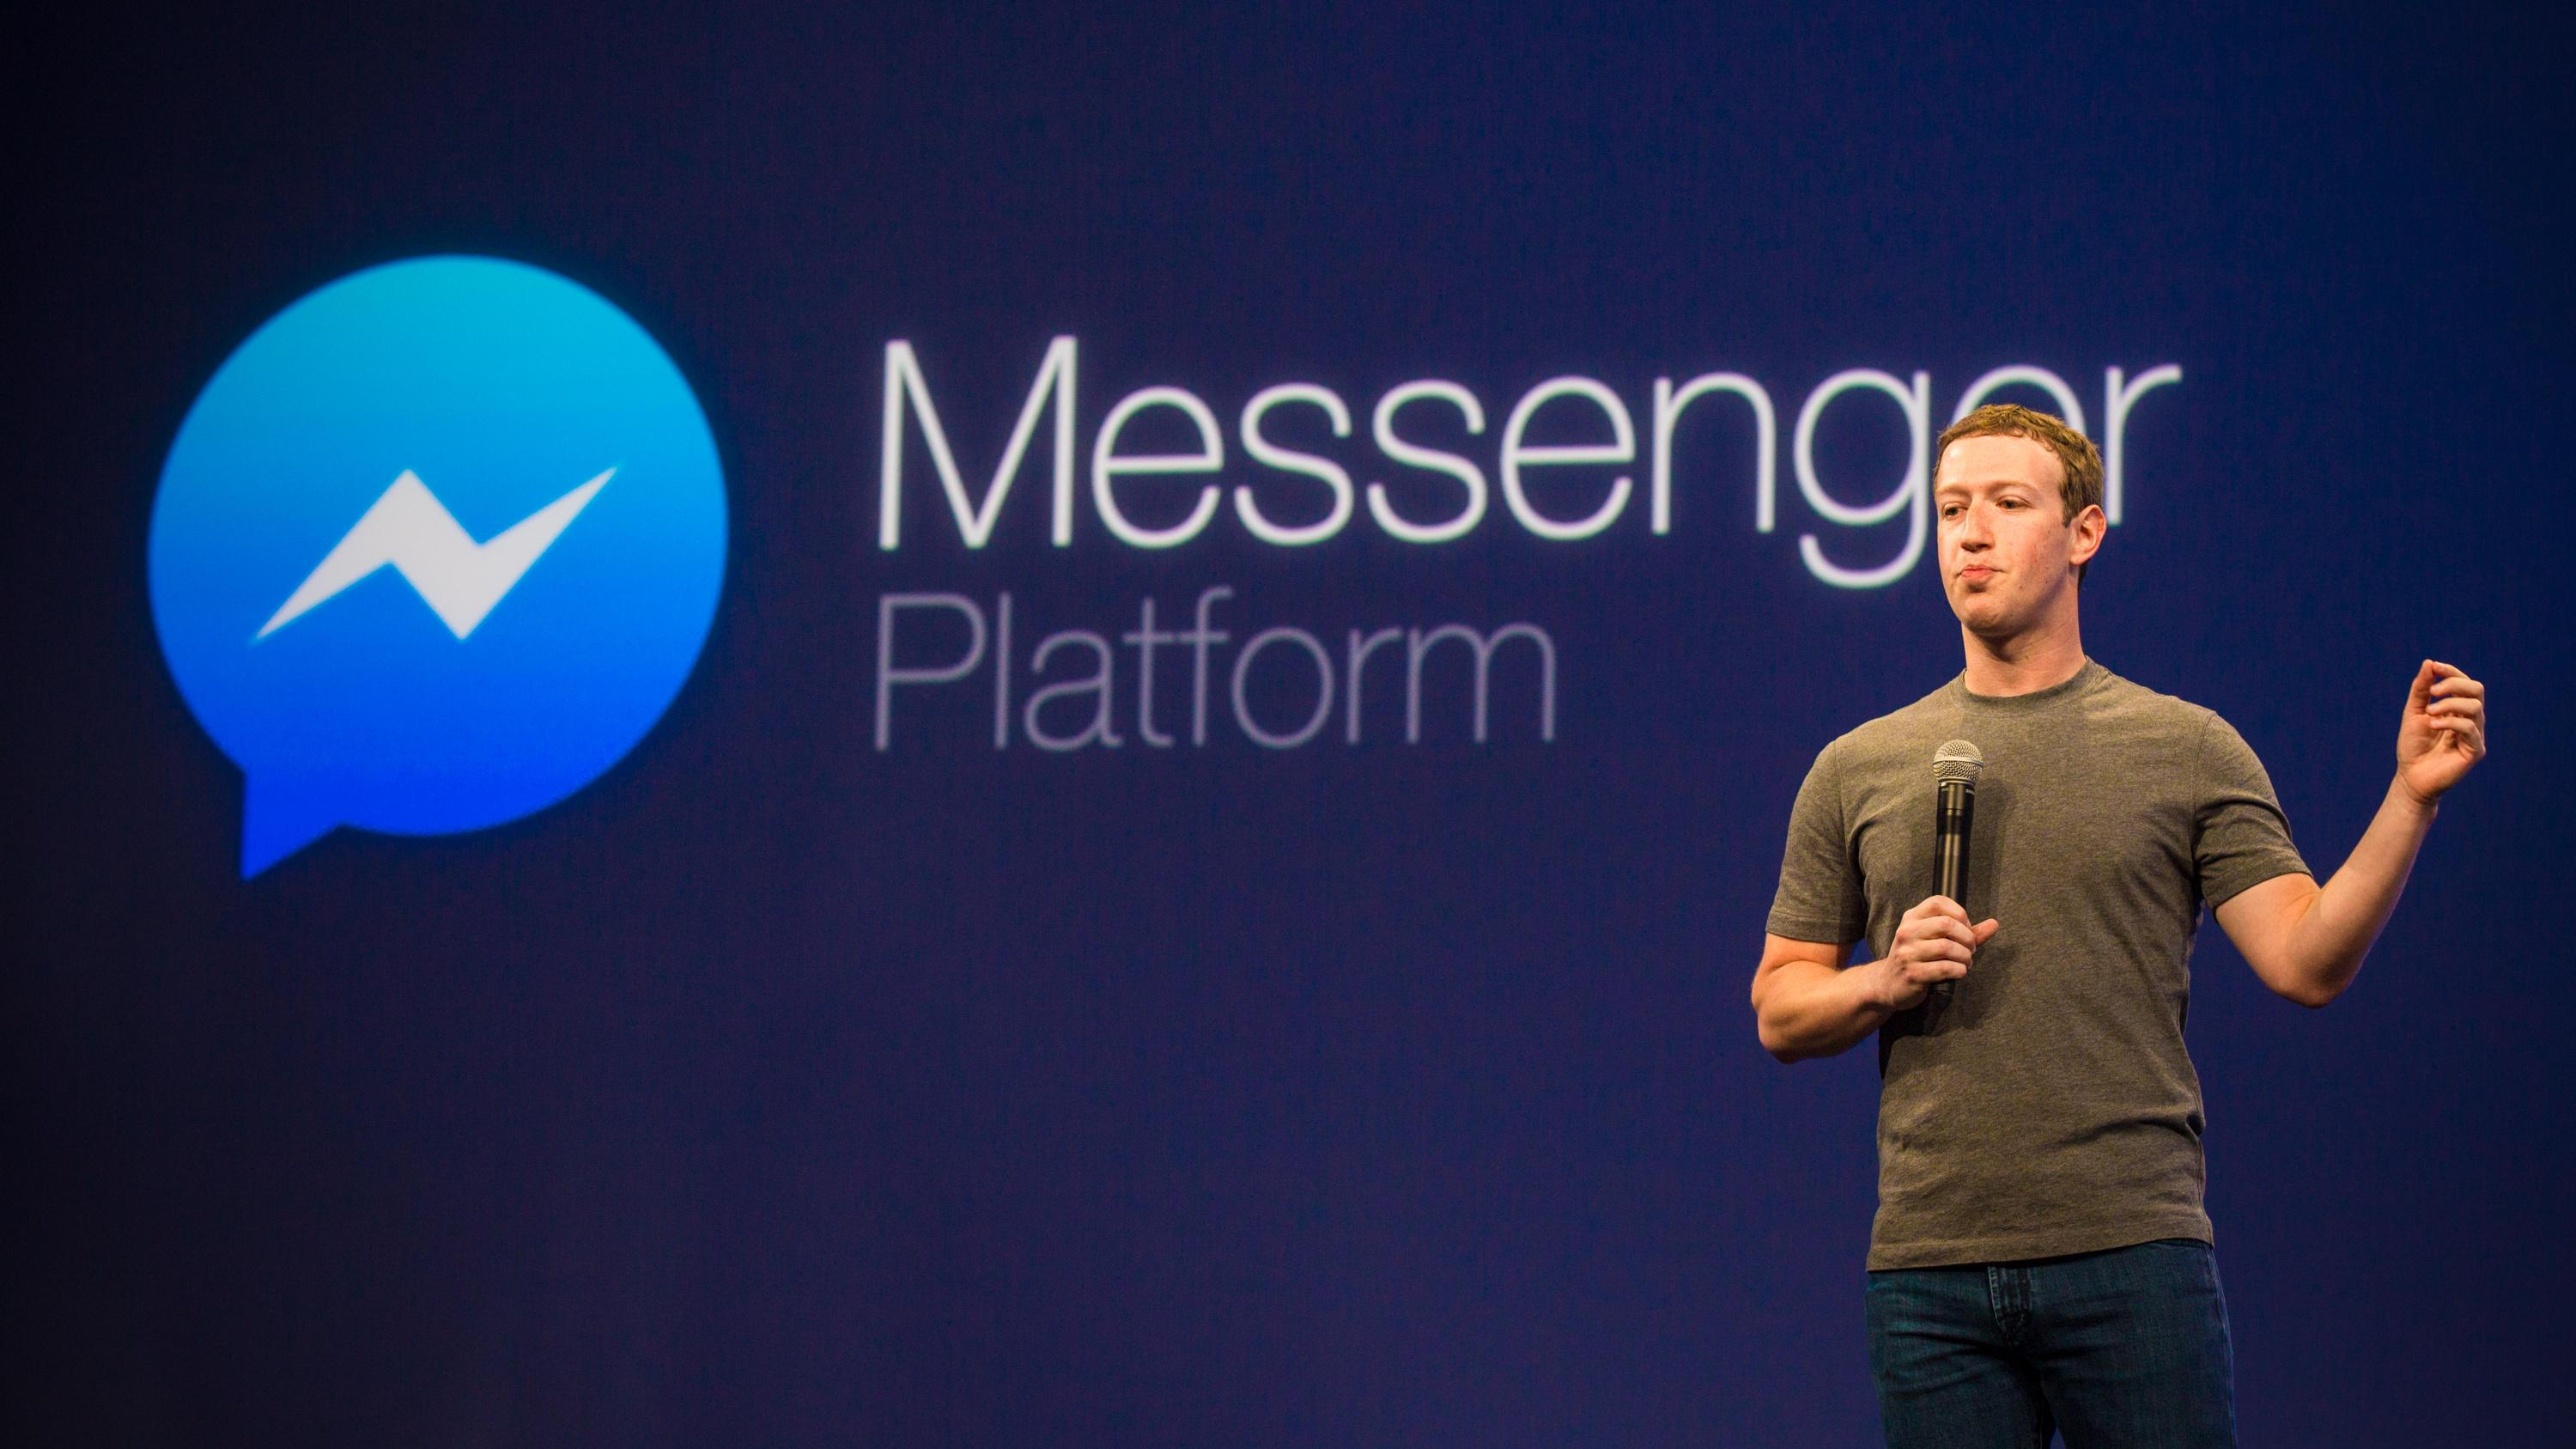 Facebook expands Messenger to work with other apps like ESPN, Weather Channel